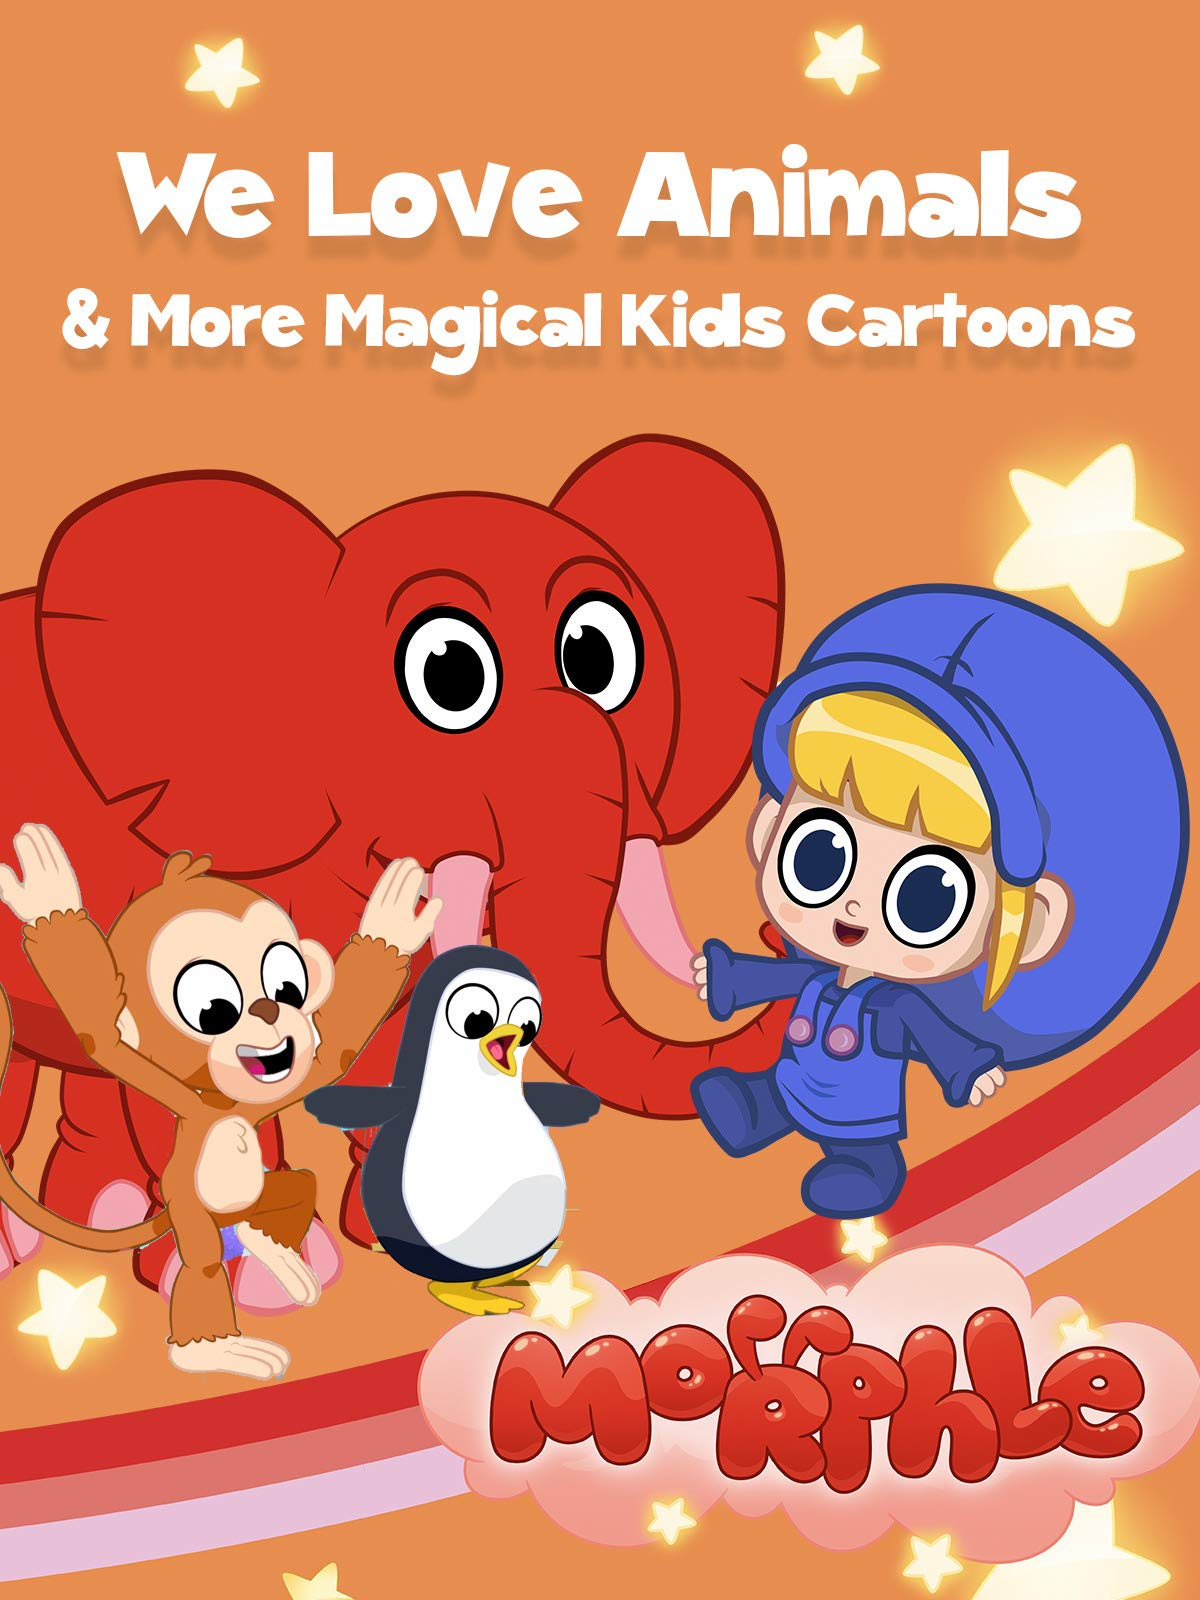 Morphle - We Love Animals & More Magical Kids Cartoons